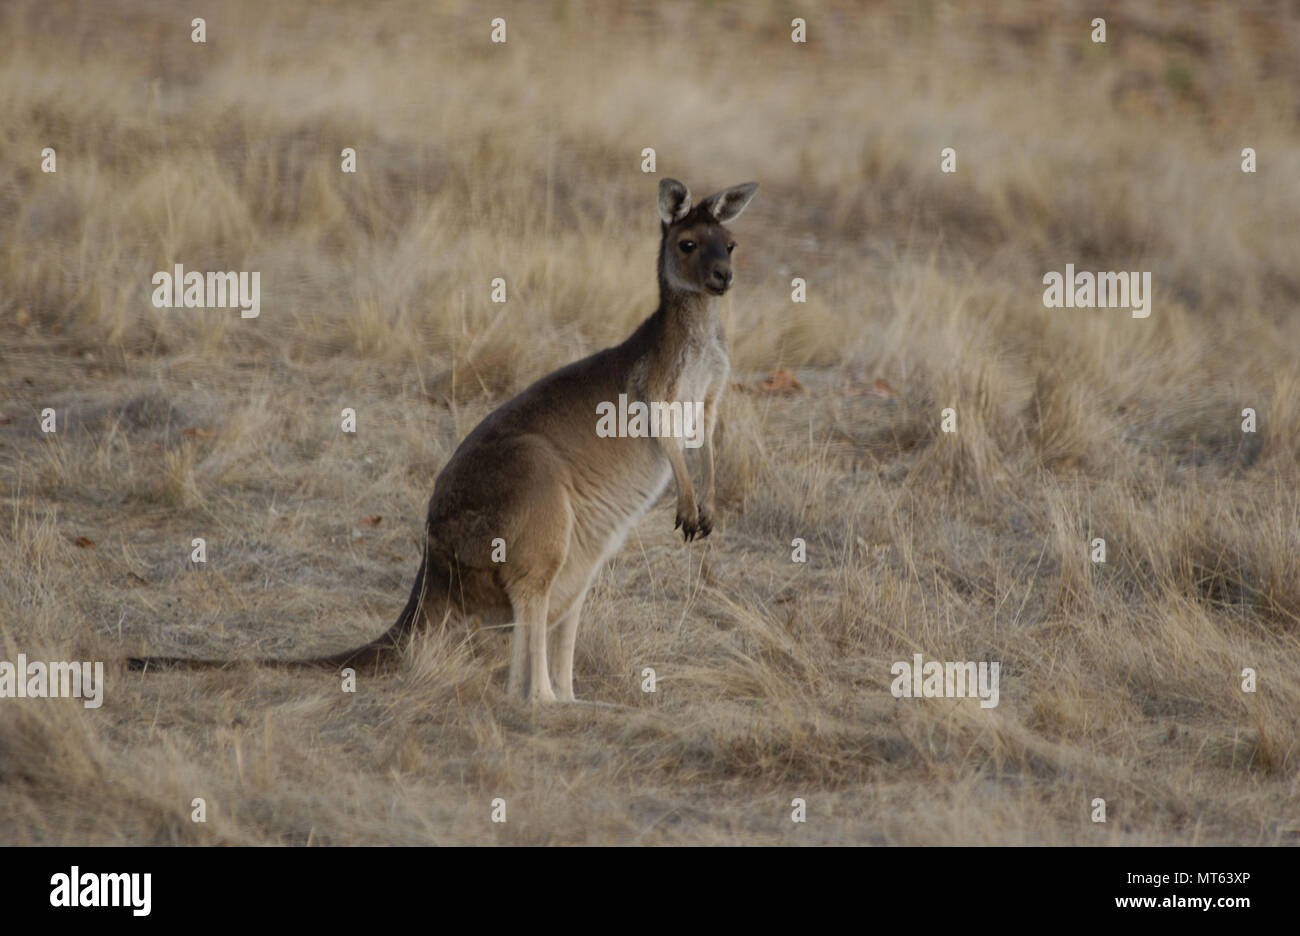 Canguro gris occidental, Australia Occidental Imagen De Stock